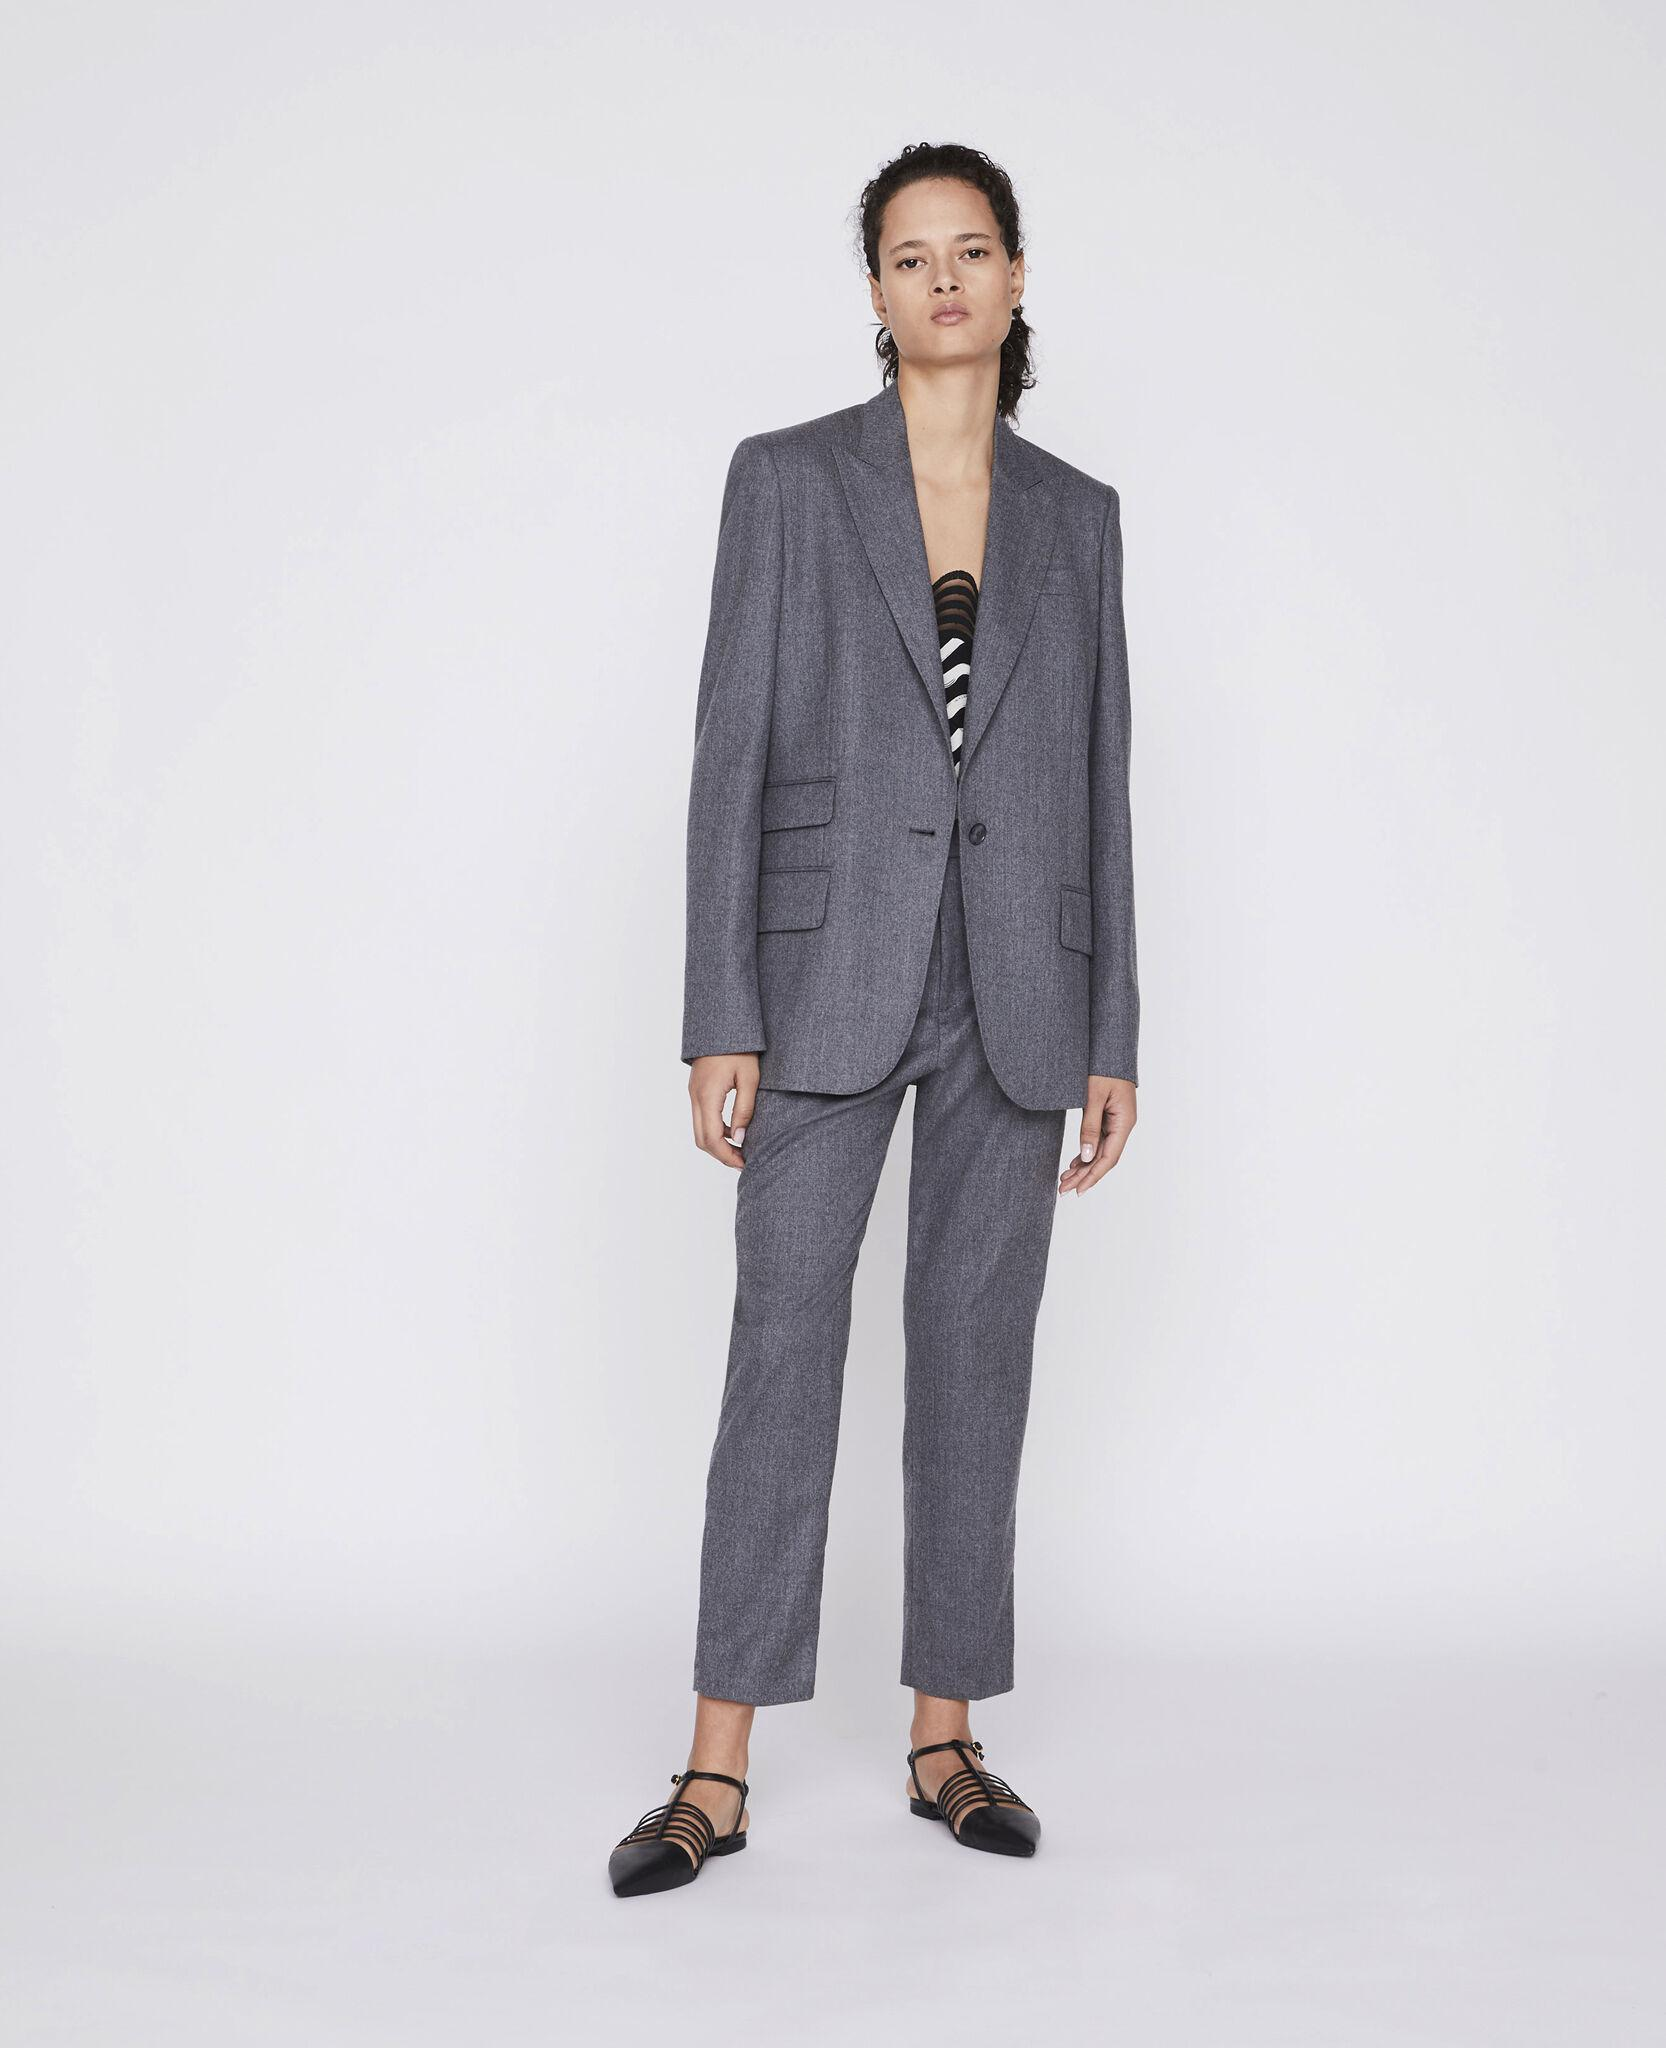 Tailored Bell Jacket